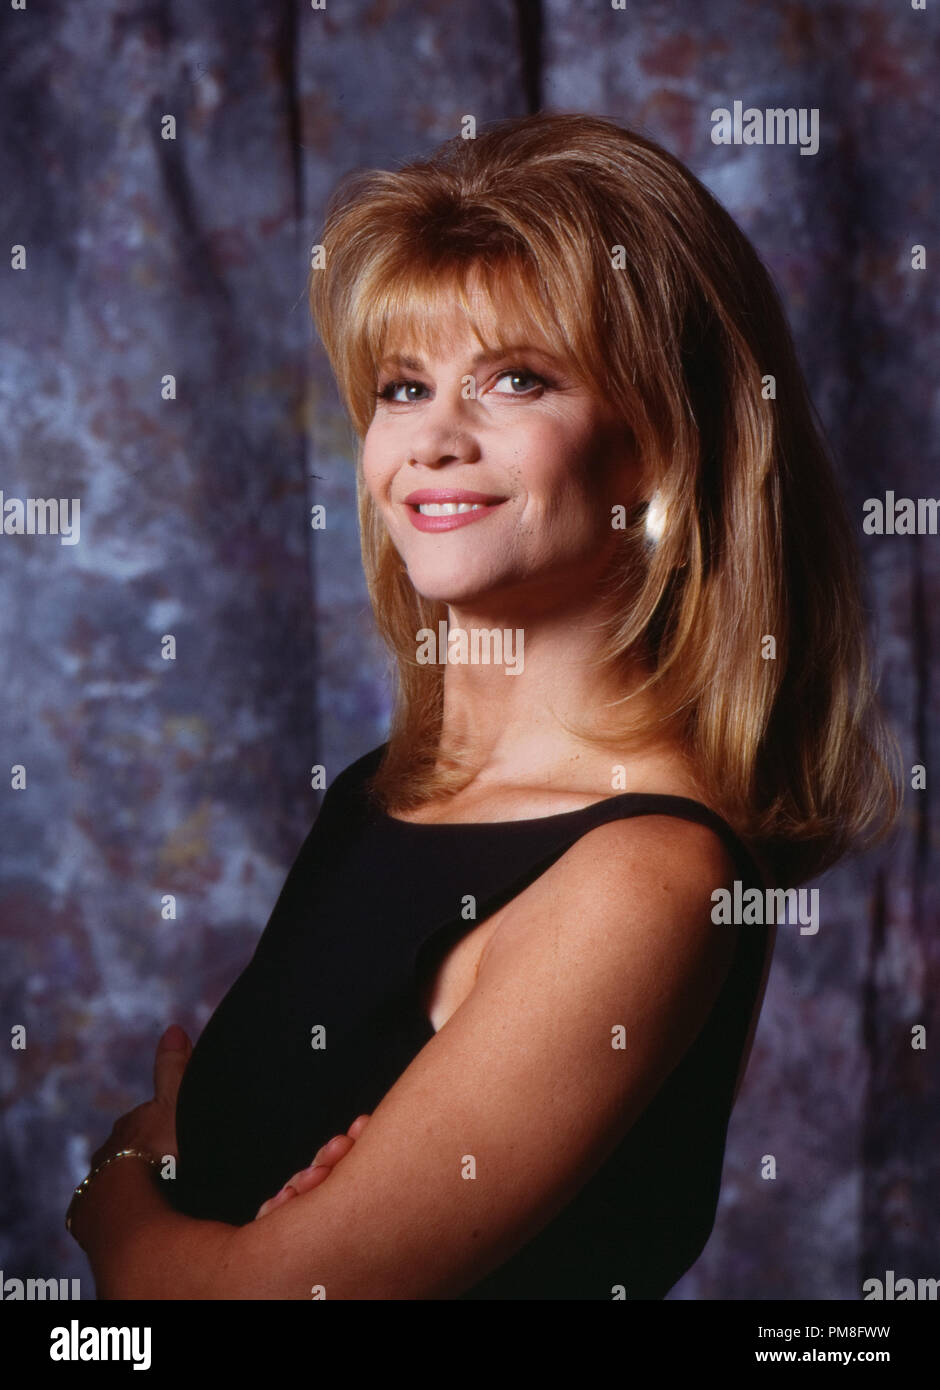 Film still / publicity,  Markie Post 1993   File Reference # 31371001THA  For Editorial Use Only All Rights Reserved - Stock Image